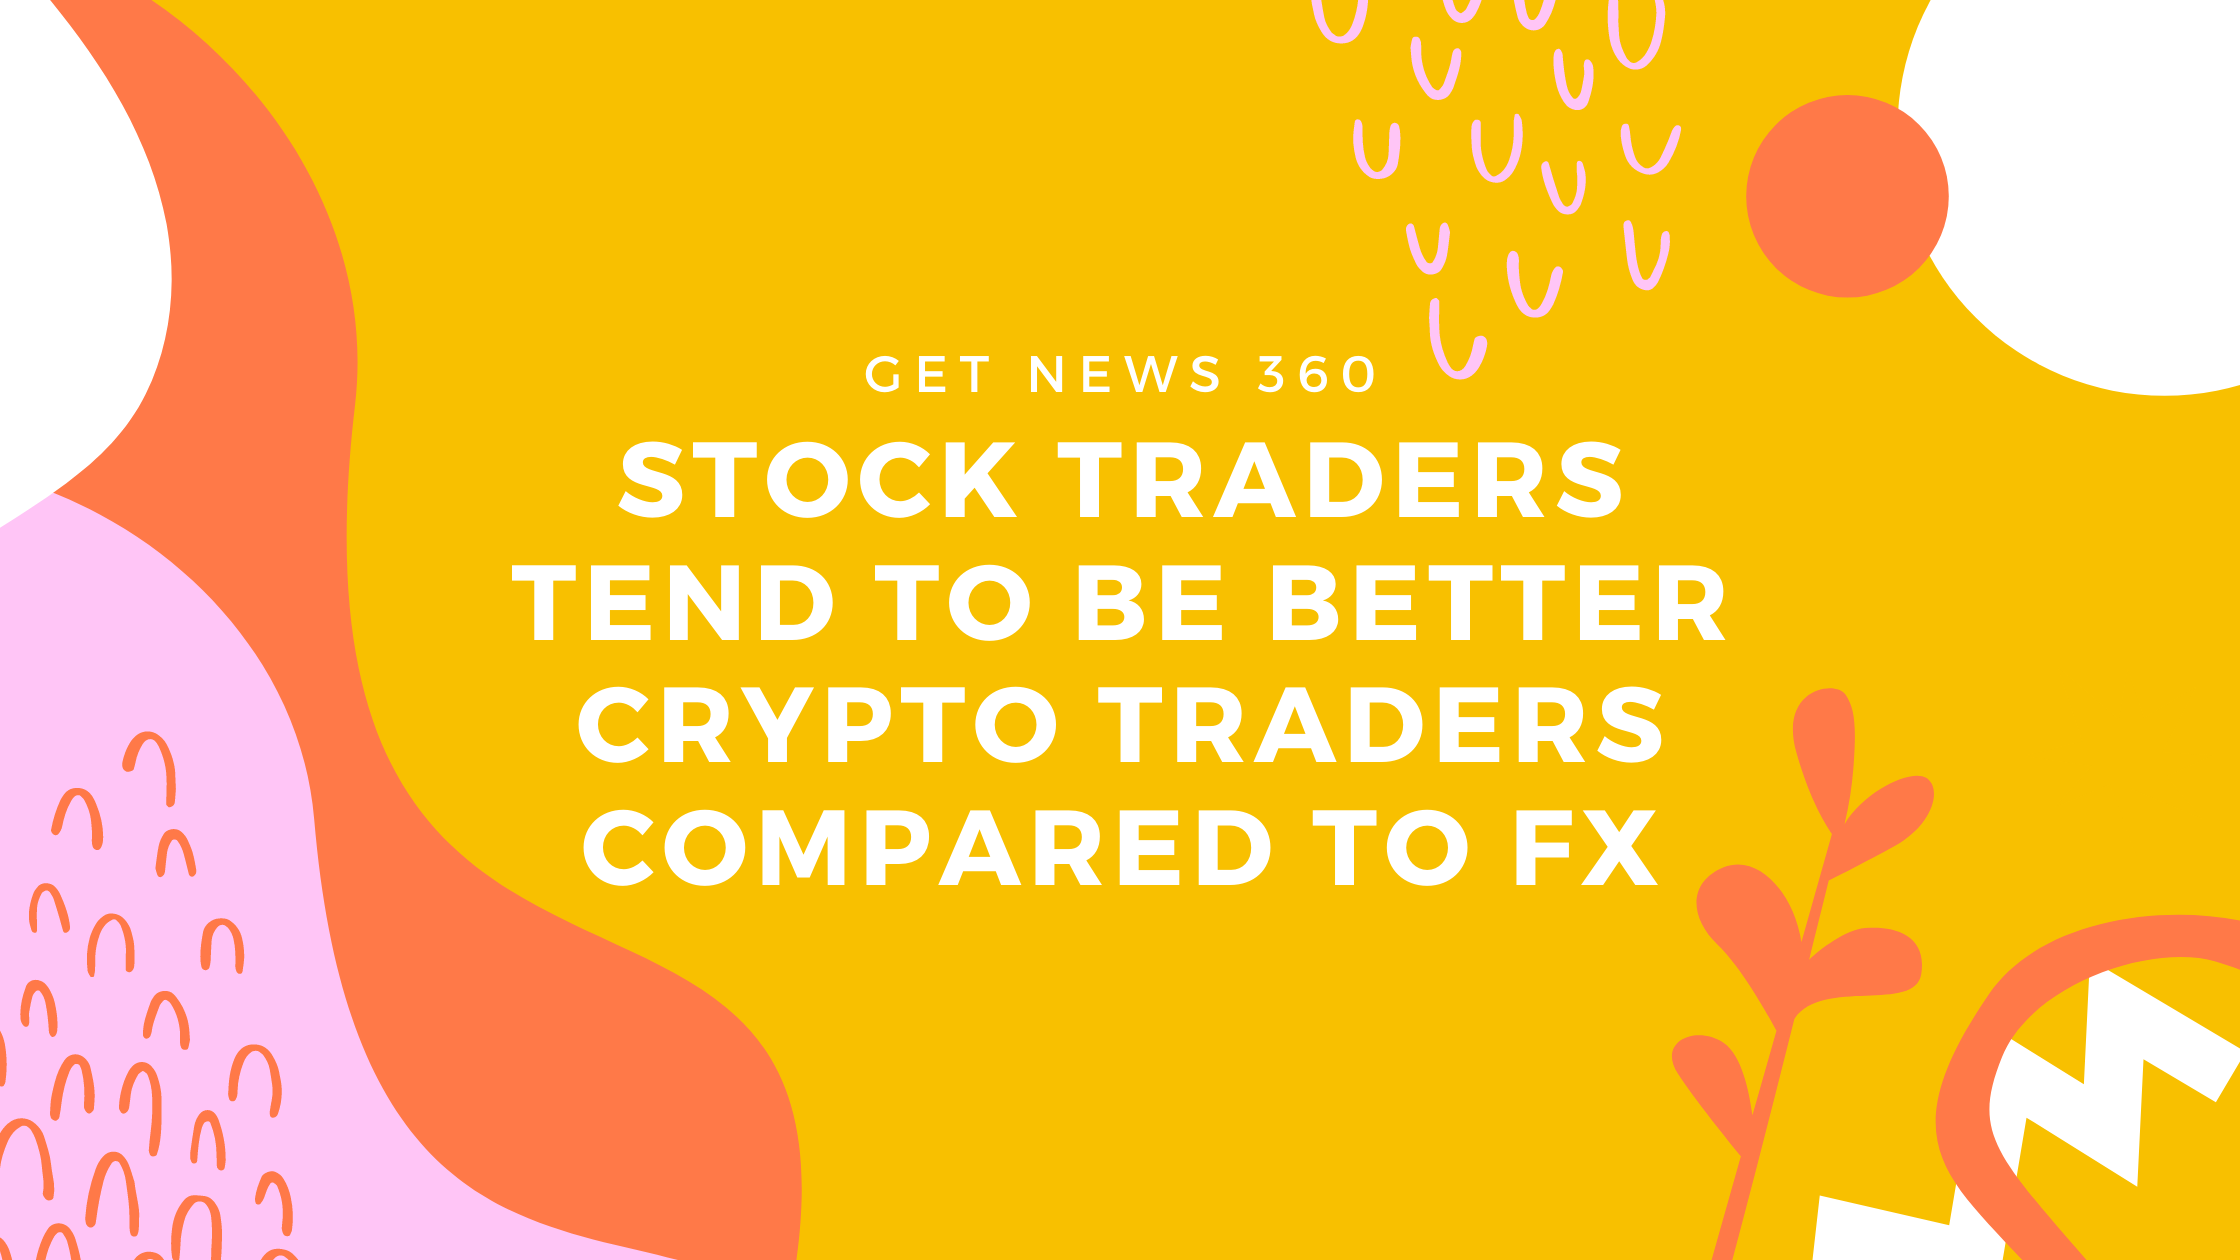 Stock traders tend to be better crypto traders compared to FX